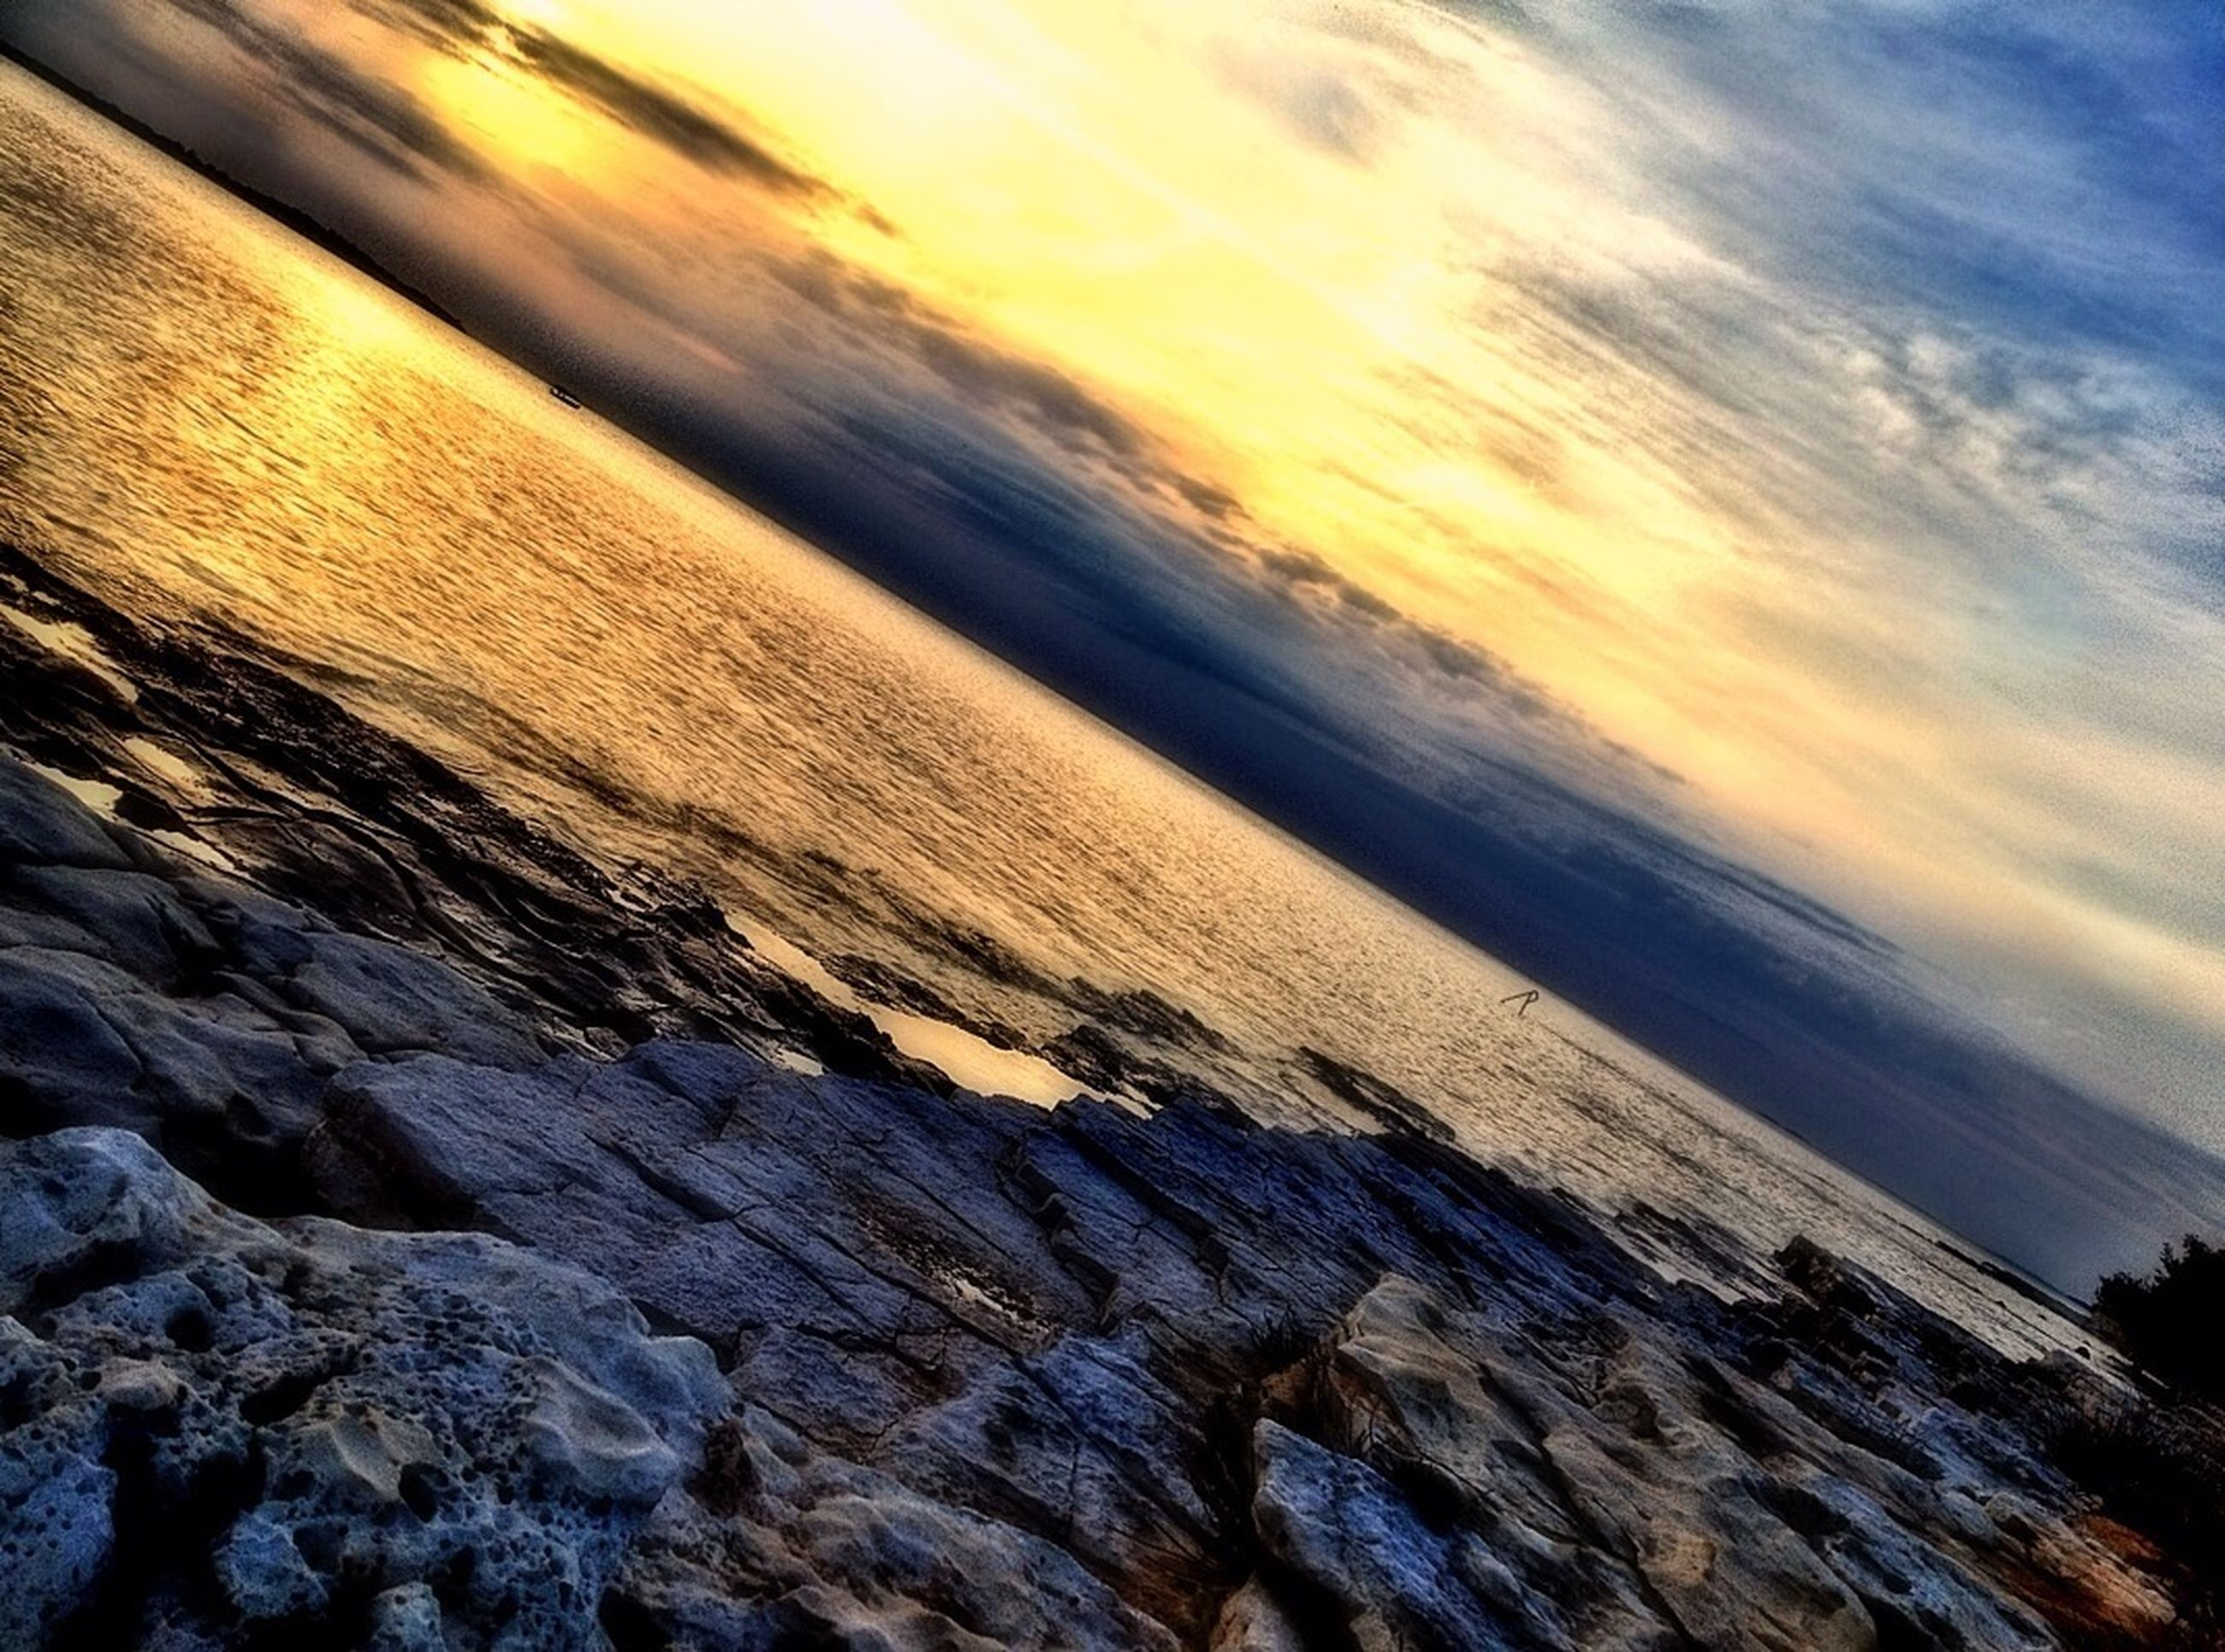 scenics, water, beauty in nature, sea, tranquil scene, sunset, tranquility, sky, beach, nature, cloud - sky, shore, idyllic, horizon over water, wave, rock - object, outdoors, surf, non-urban scene, sunlight